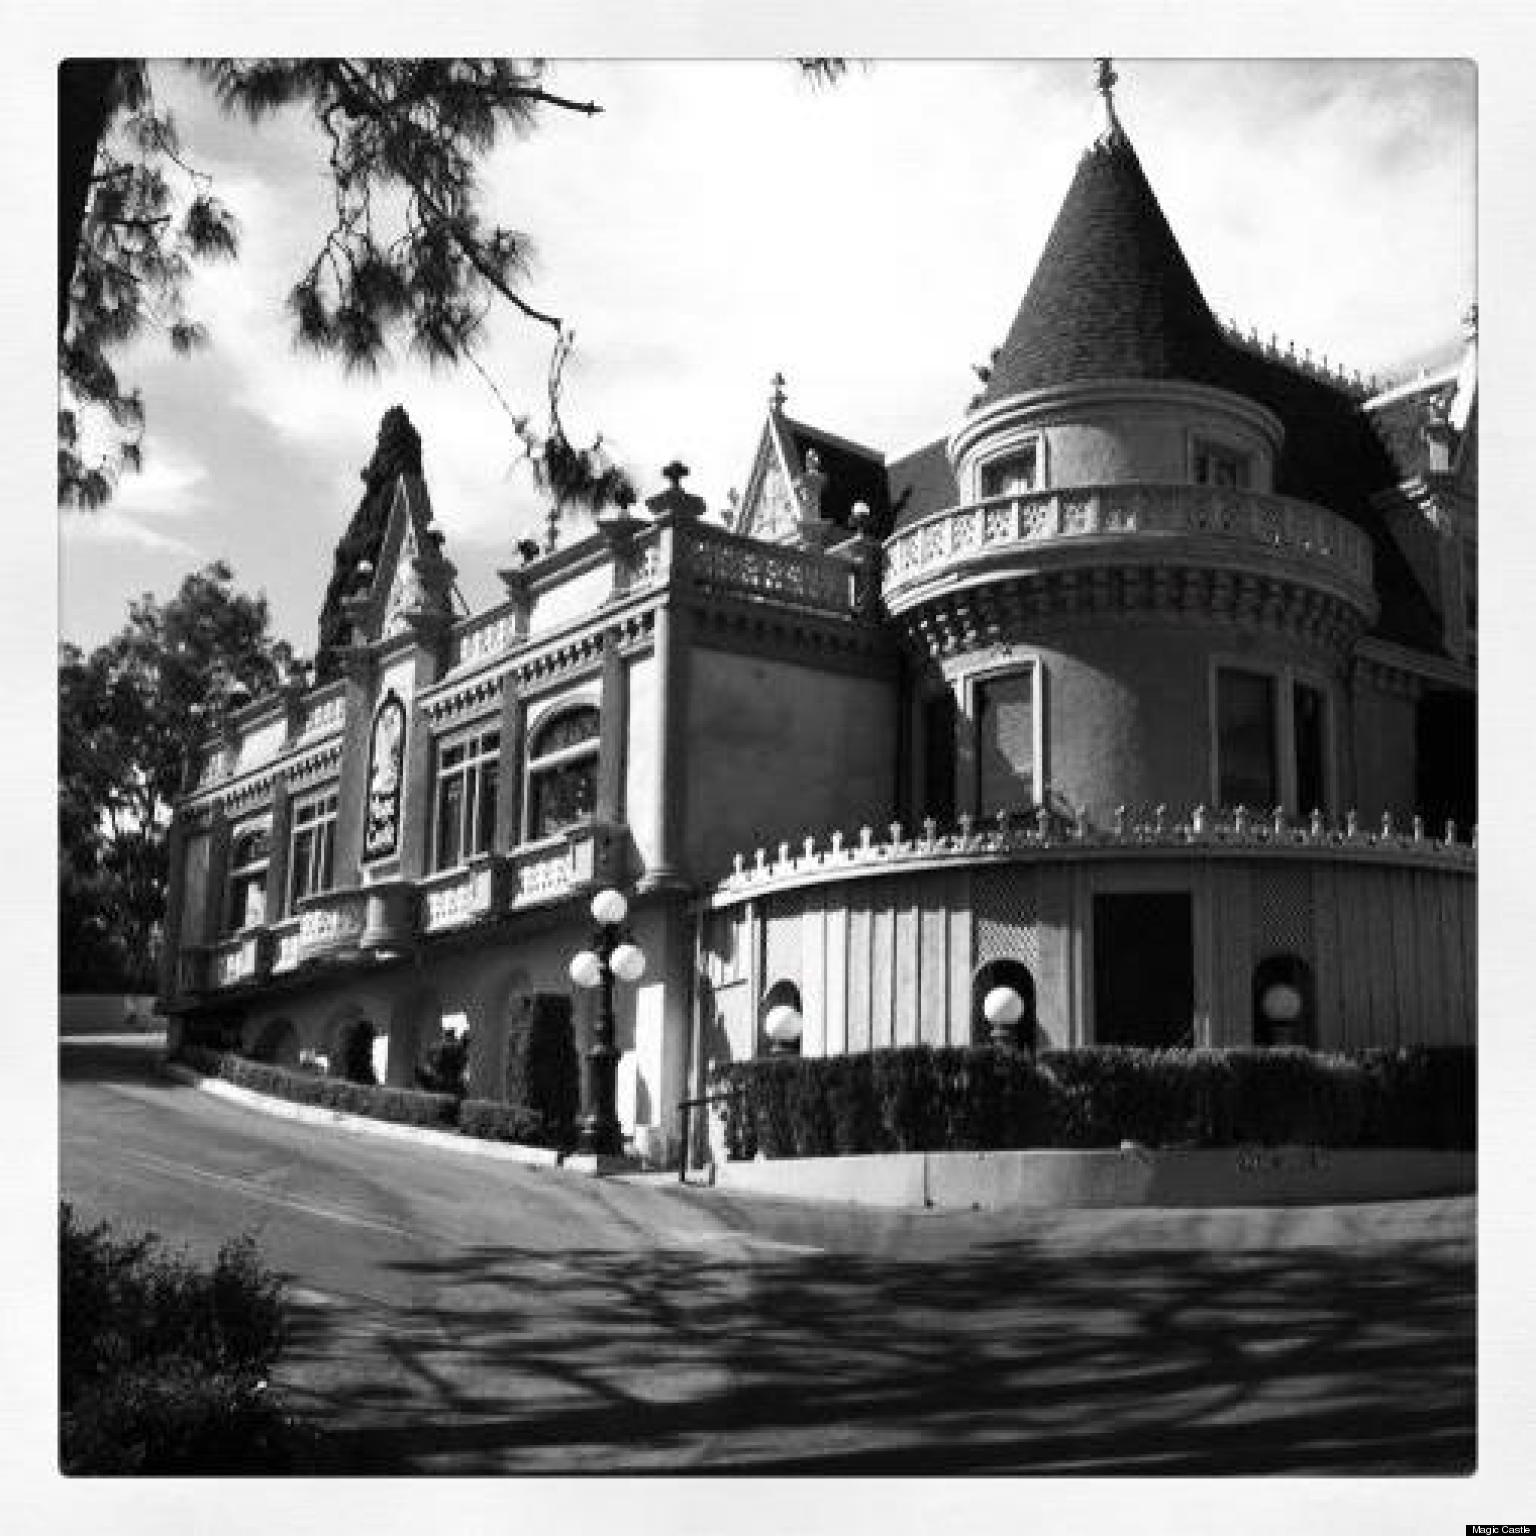 The Amazing History Of The Magic Castle